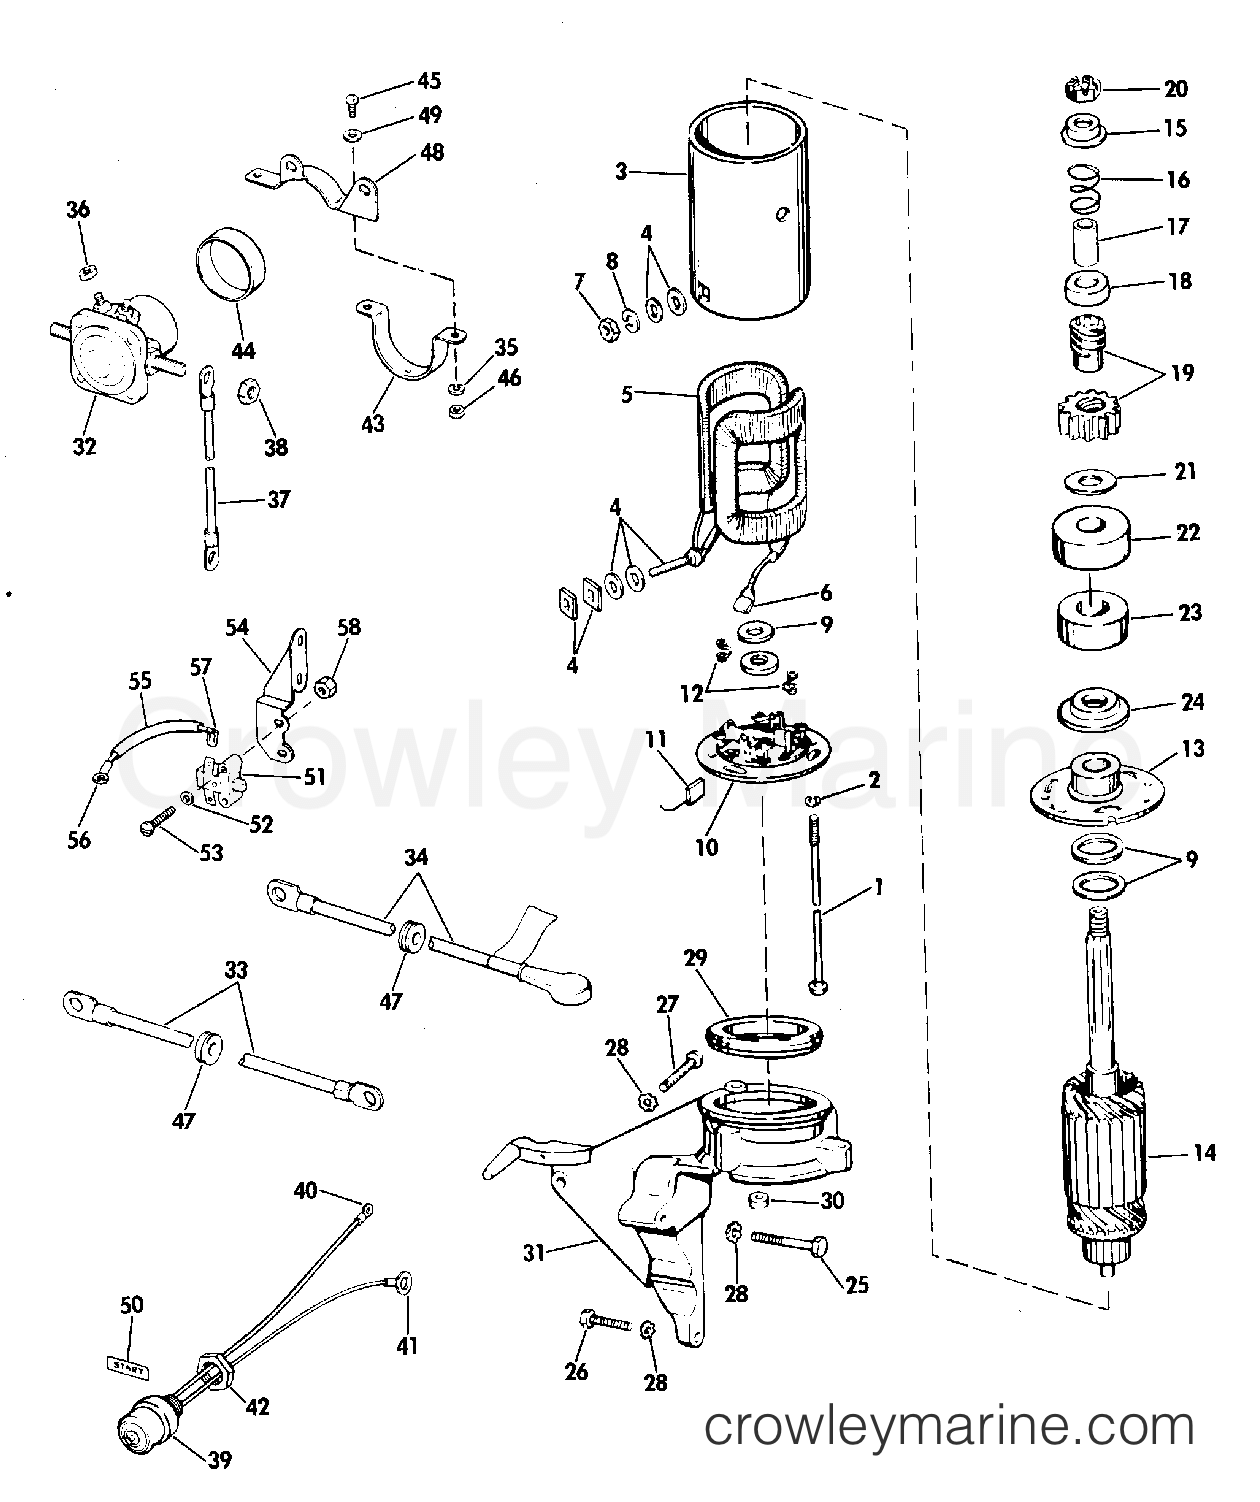 hight resolution of mercury outboard control box parts diagram wiring